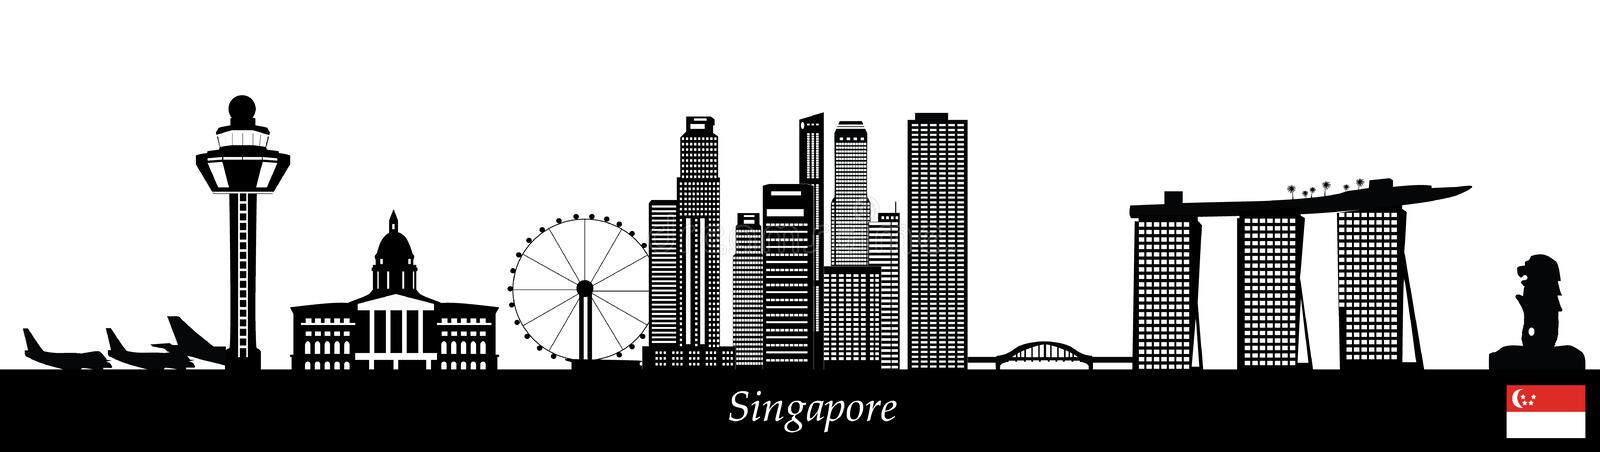 Singapore skyline royalty free illustration